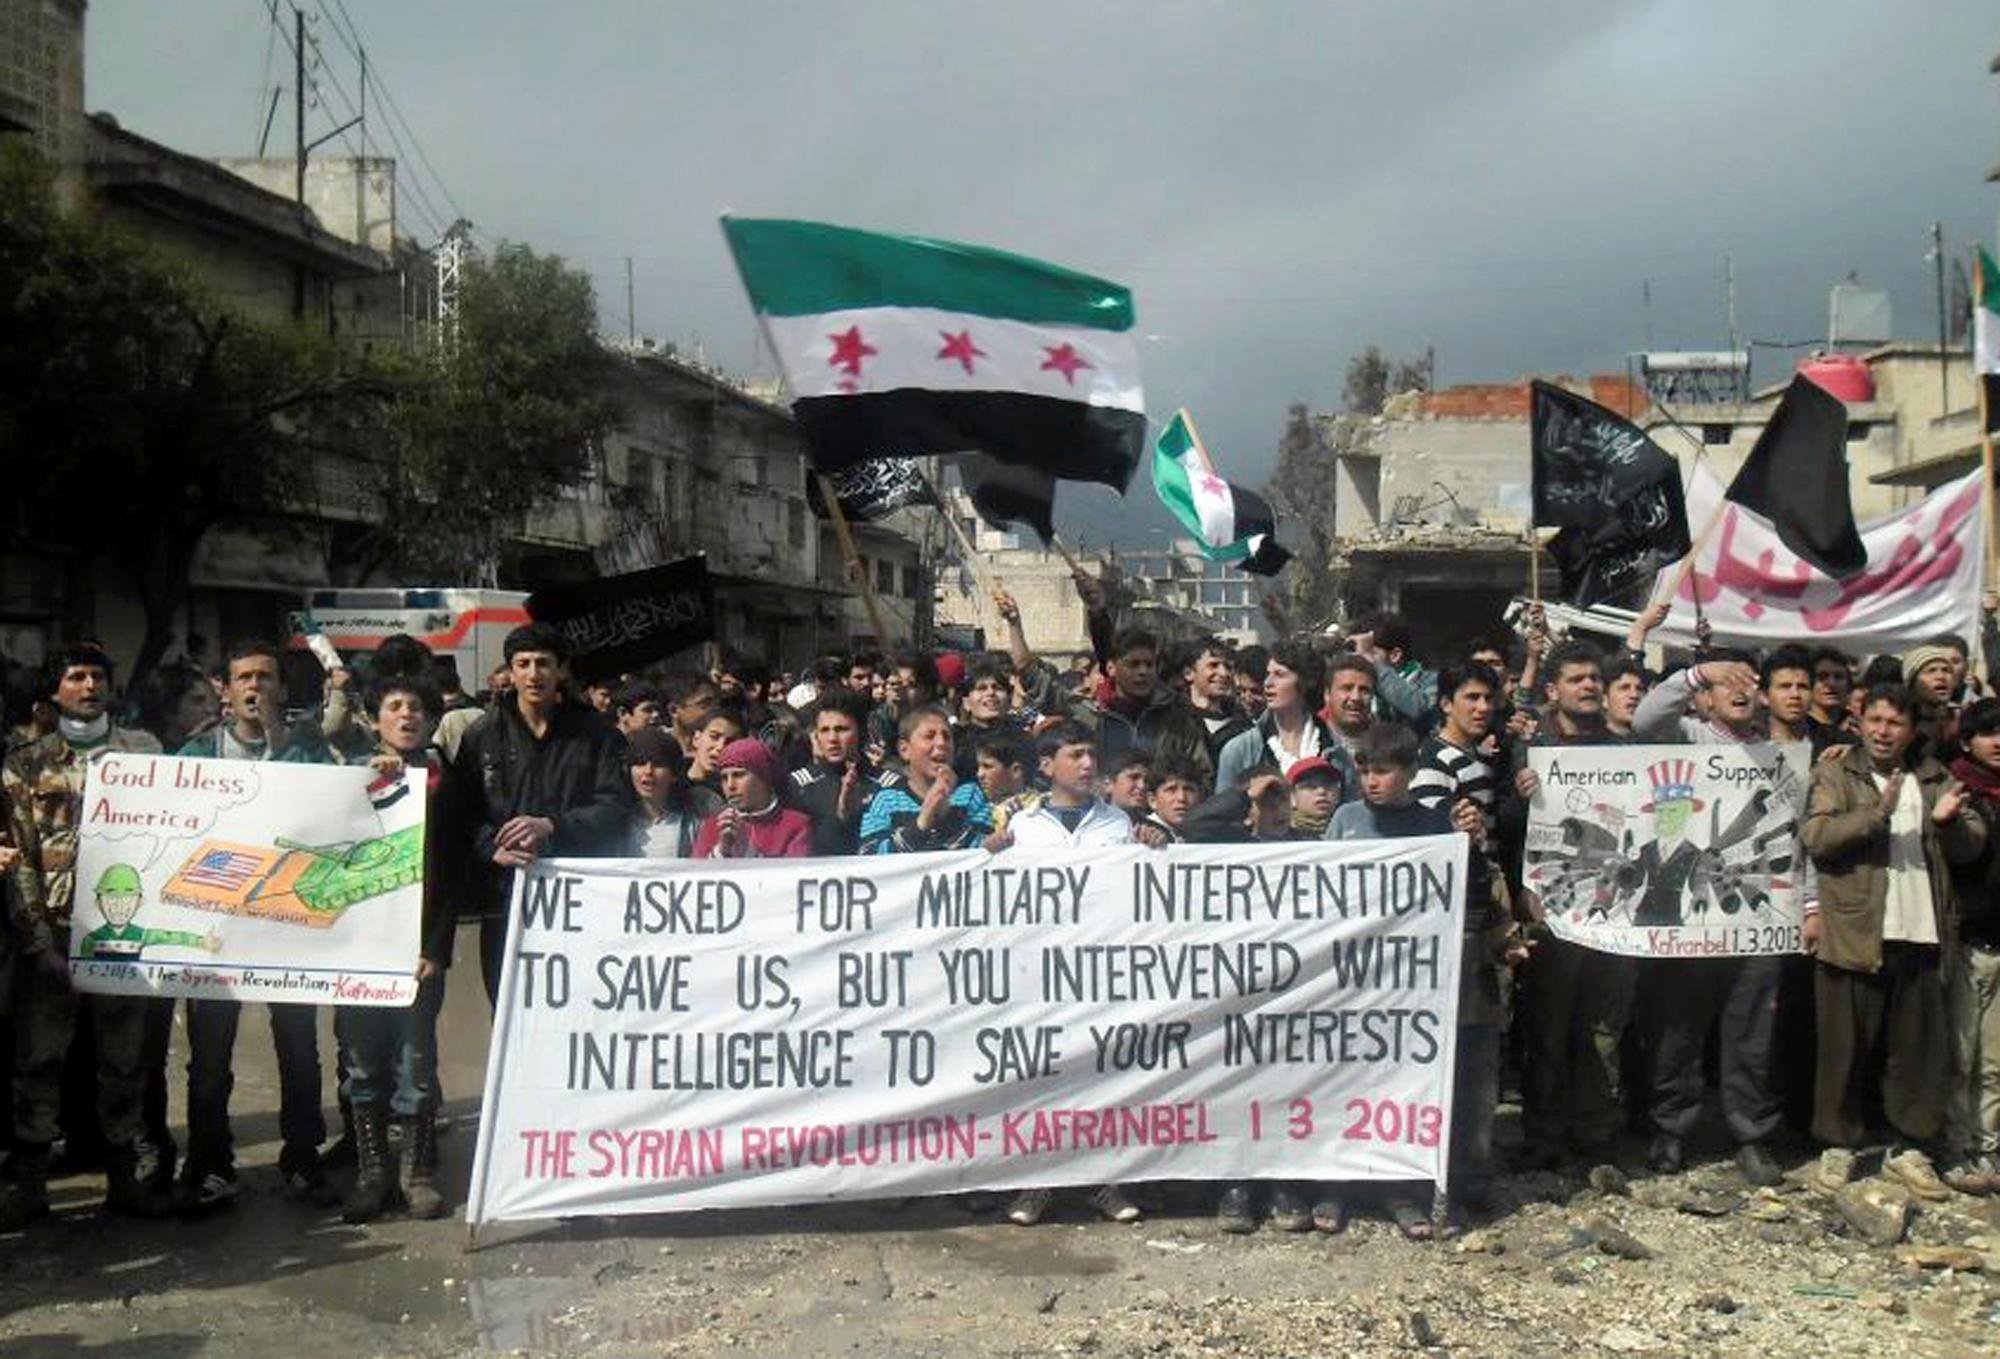 This citizen journalism image provided by Edlib News Network, ENN, which has been authenticated based on its contents and other AP reporting, shows anti-Syrian regime protesters holding a banner and Syrian revolution flags, during a demonstration, at Kafr Nabil town, in Idlib province, northern Syria, Friday, March. 1, 2013. Syrian government forces fought fierce clashes with rebels attacking a police academy near the northern city of Aleppo on Friday, while the bodies of 10 men most of them shot in the head were found dumped along the side of a road outside Damascus, activists said. (AP Photo/Edlib News Network ENN)